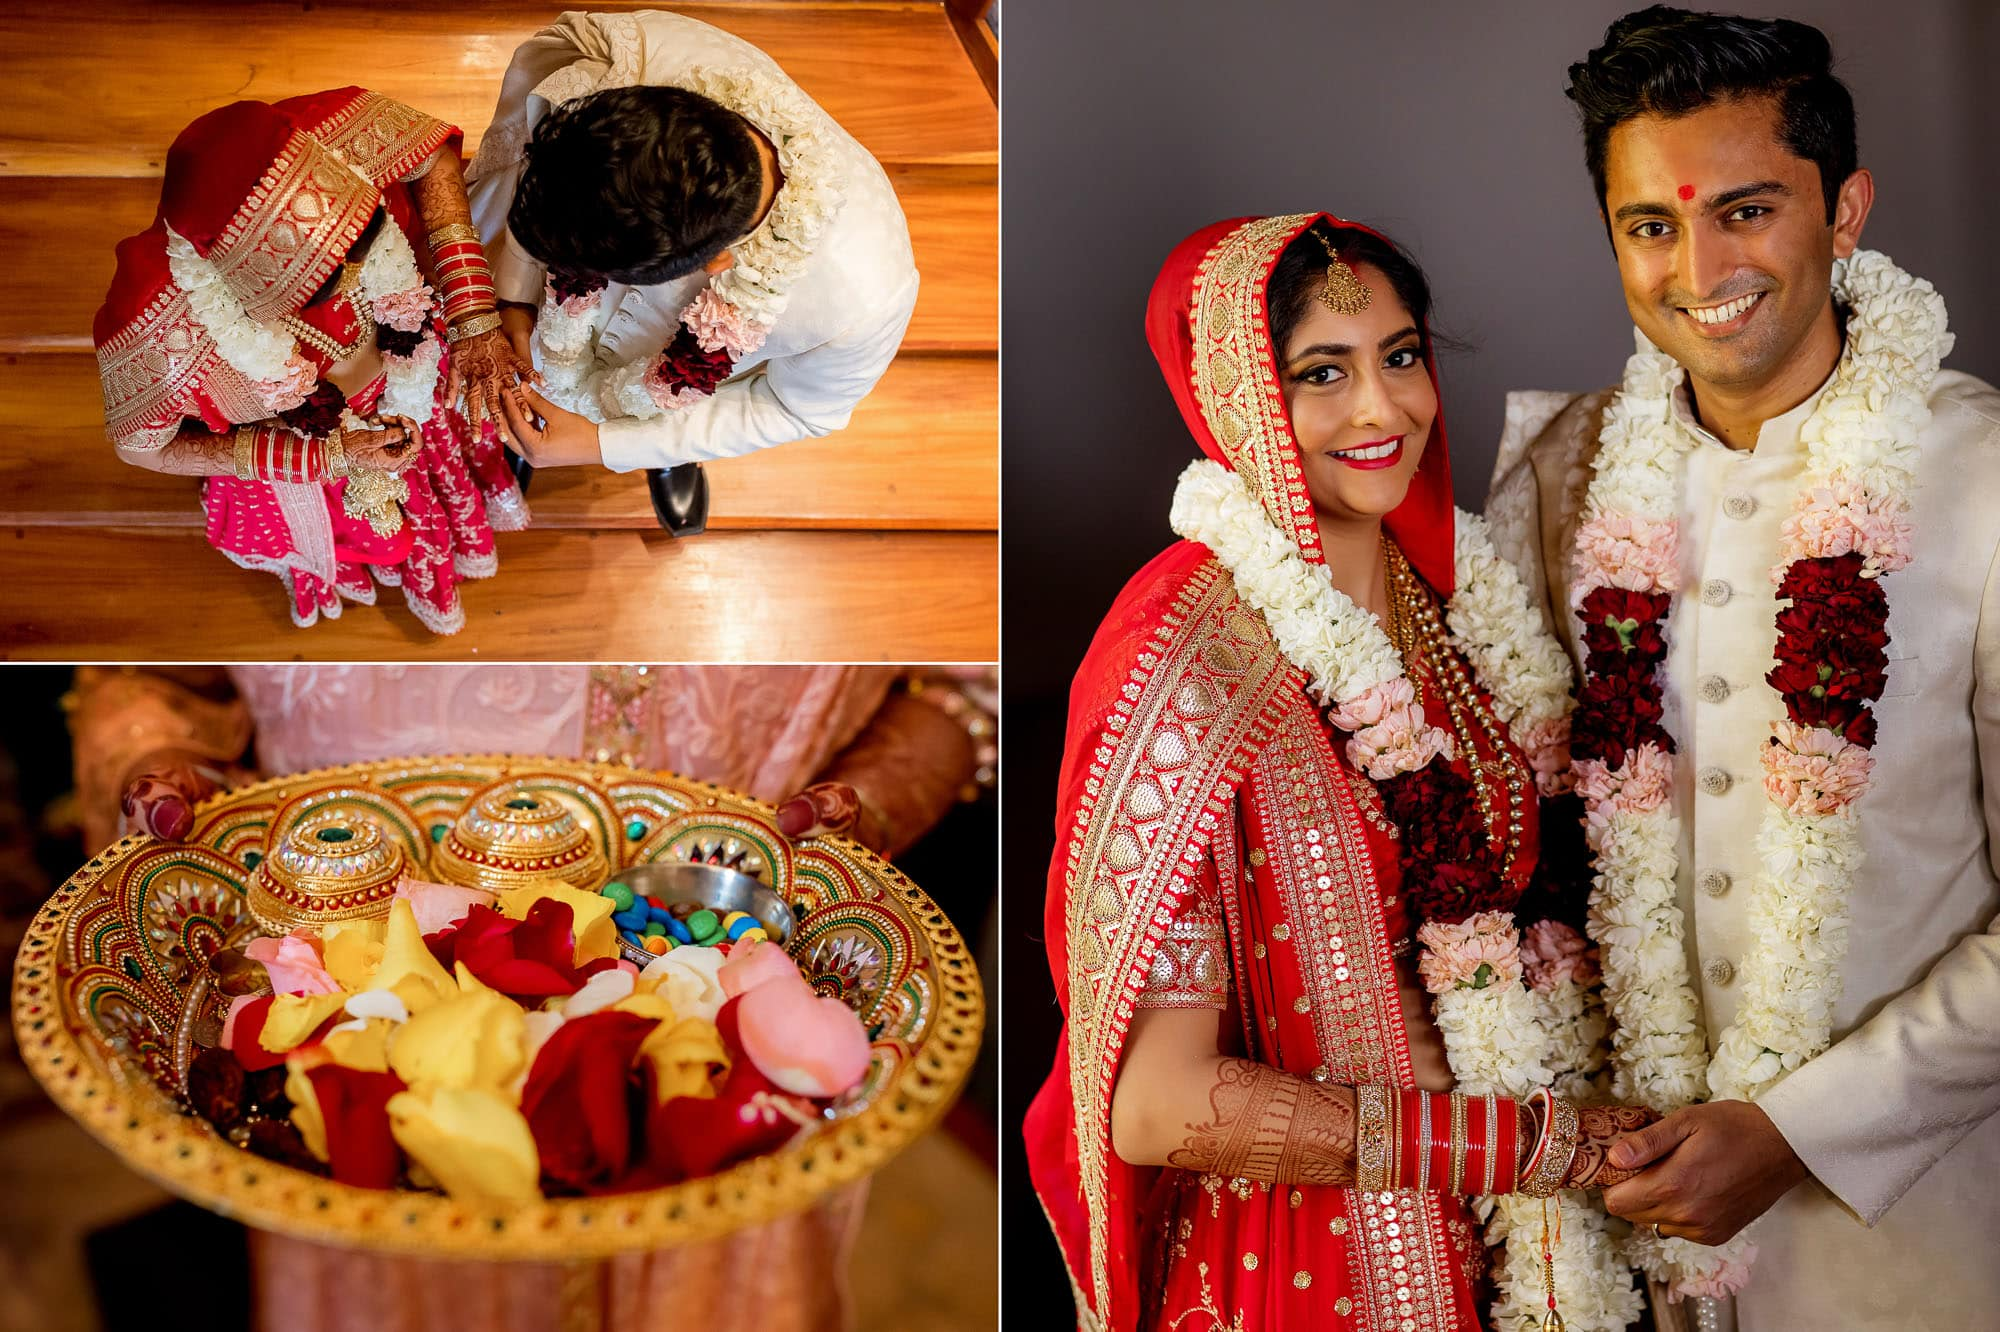 Throwing flower petals on the couple to bless them with prosperity and happiness